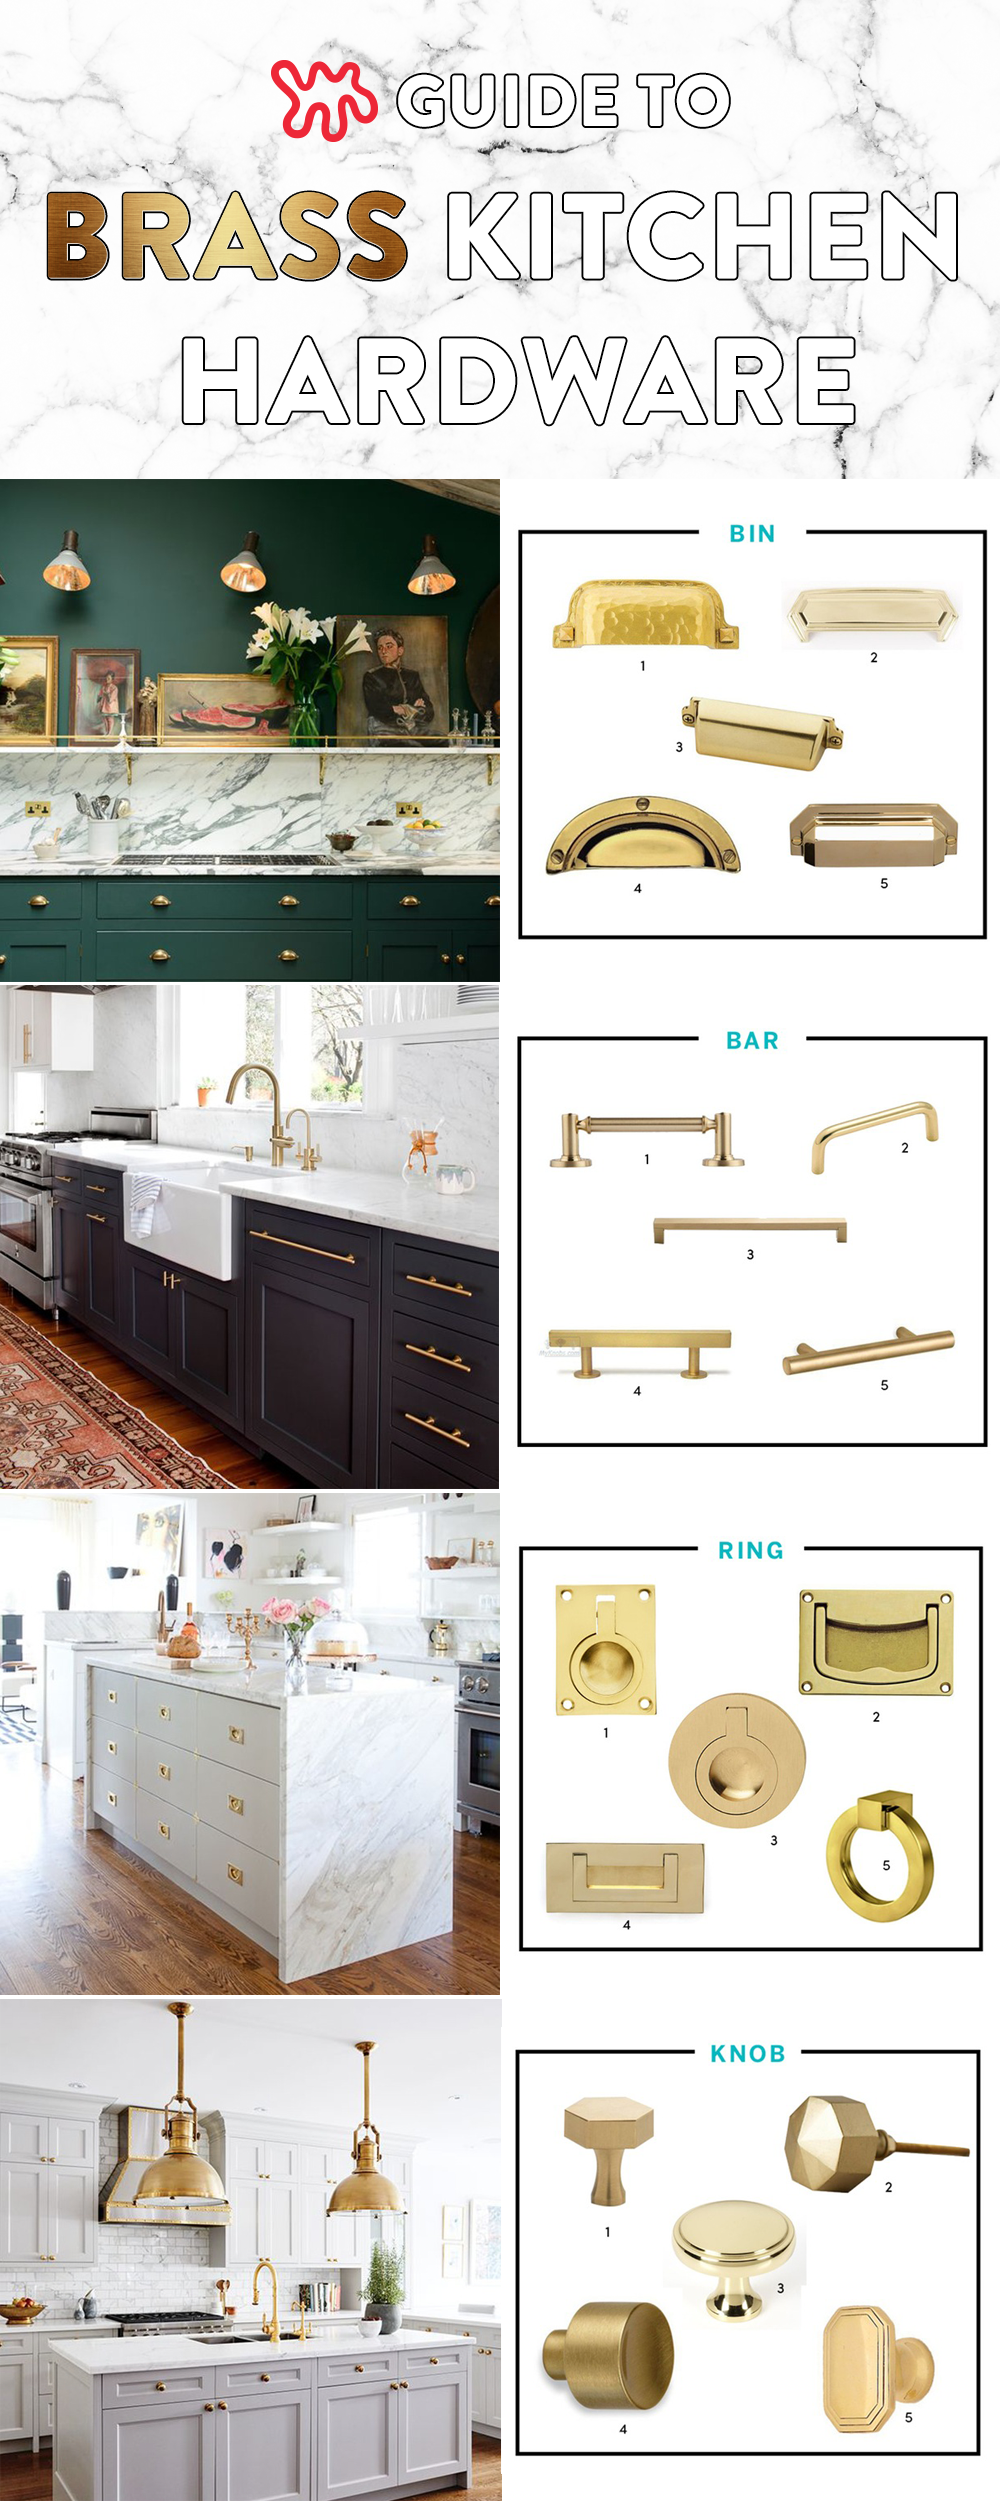 Looking To Update Your Kitchen With Brass Hardware? Letu0027s Take A Look At  Four Main Categories: Bin Pulls, Bar Pulls, Ring Pulls And, Of Course, Knobs .